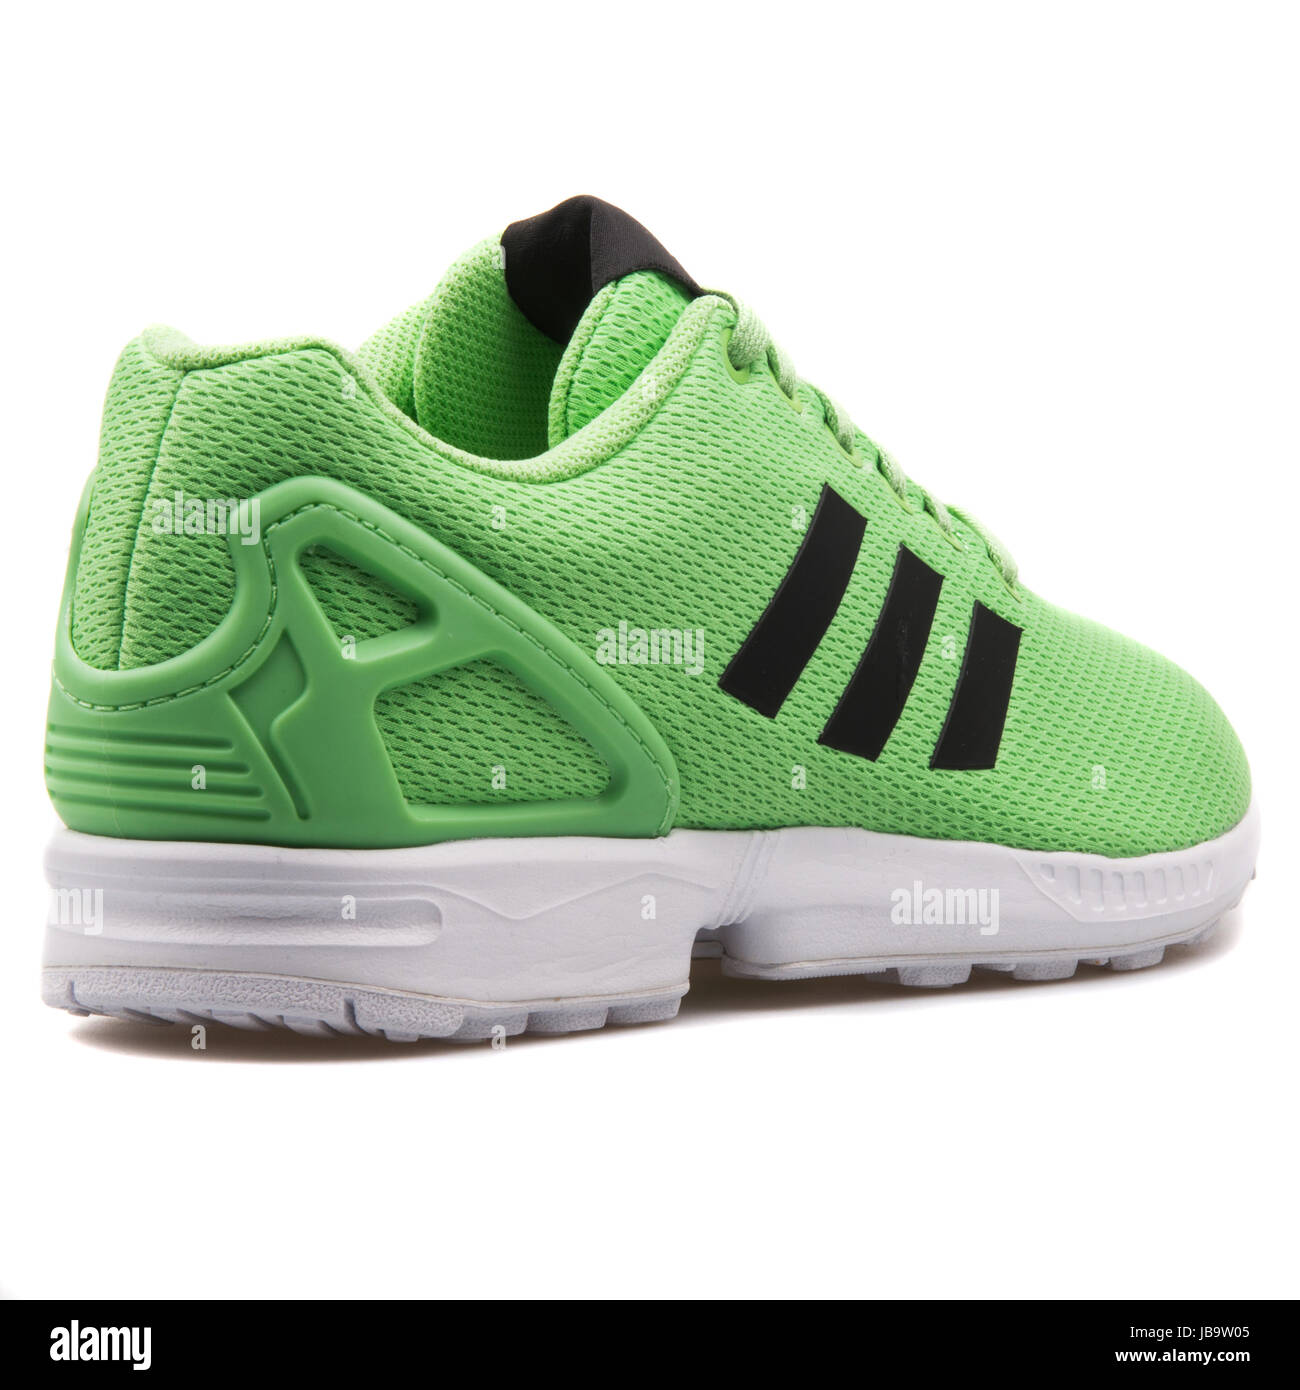 Adidas ZX Flux Green and White Men's Running Shoes - AF6345 Stock ...